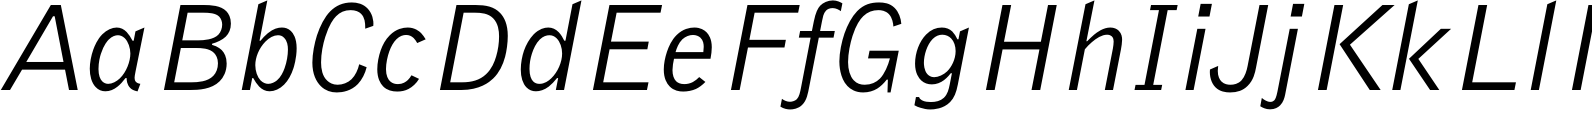 Bell Gothic Italic Font